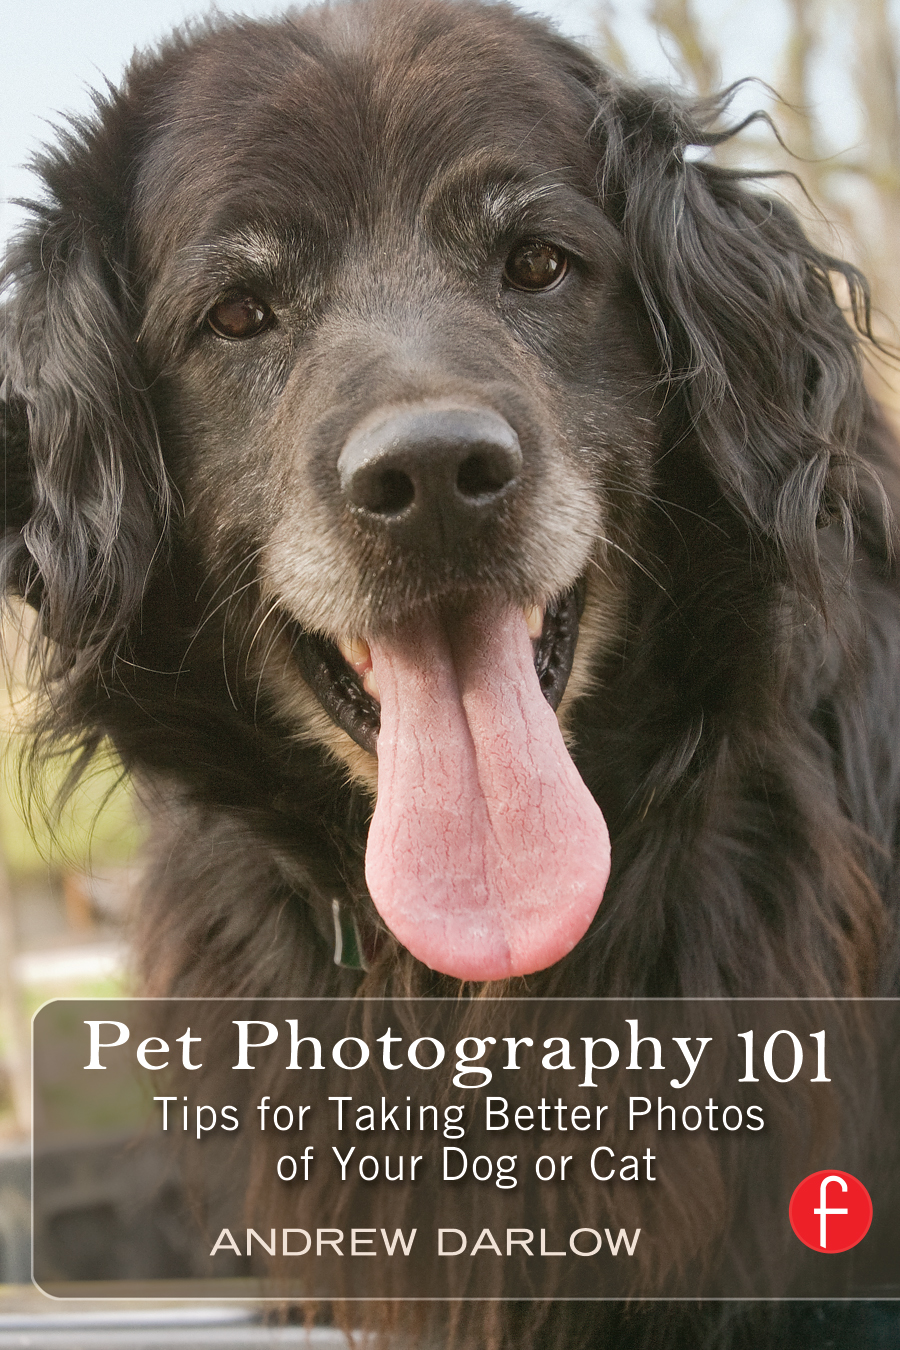 Pet Photography 101 Tips for taking better photos of your dog or cat